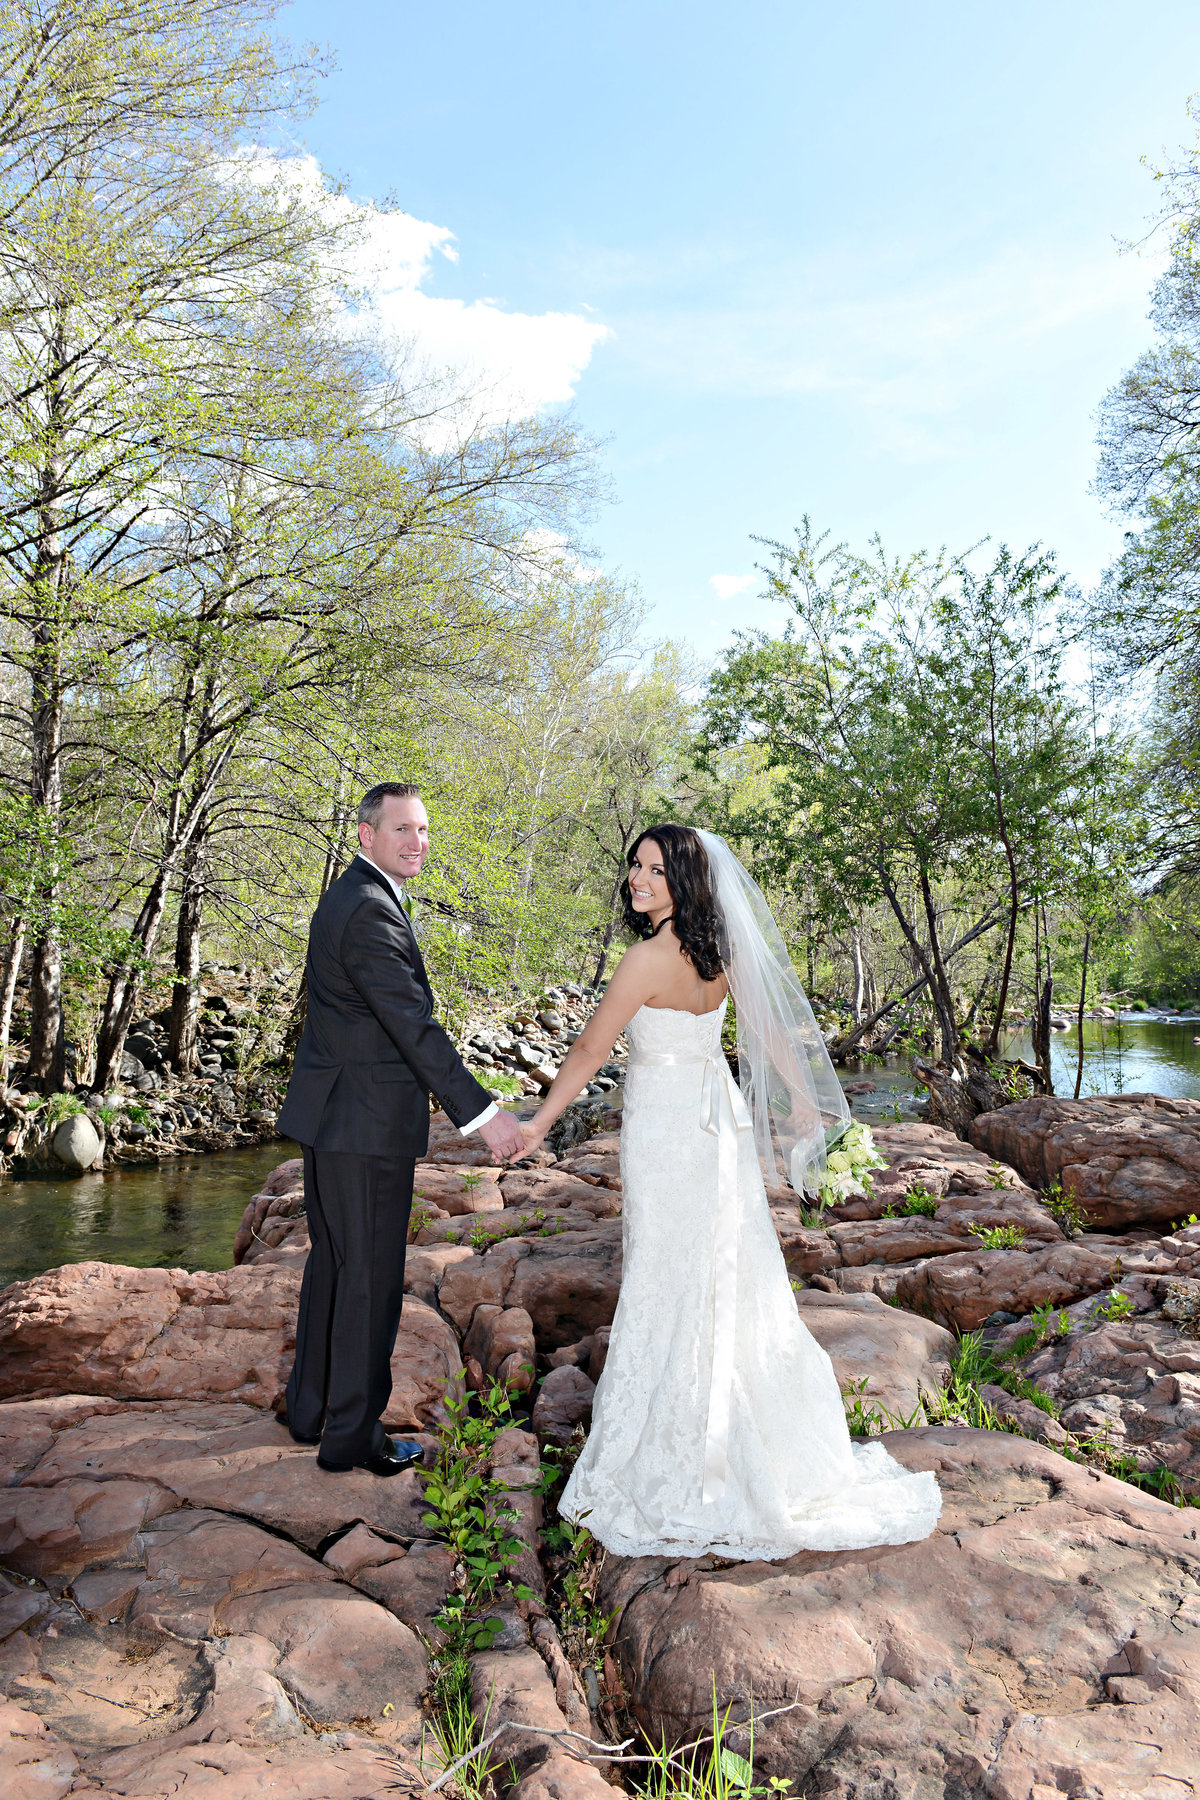 Bride and groom standing by a river in Sedona AZ